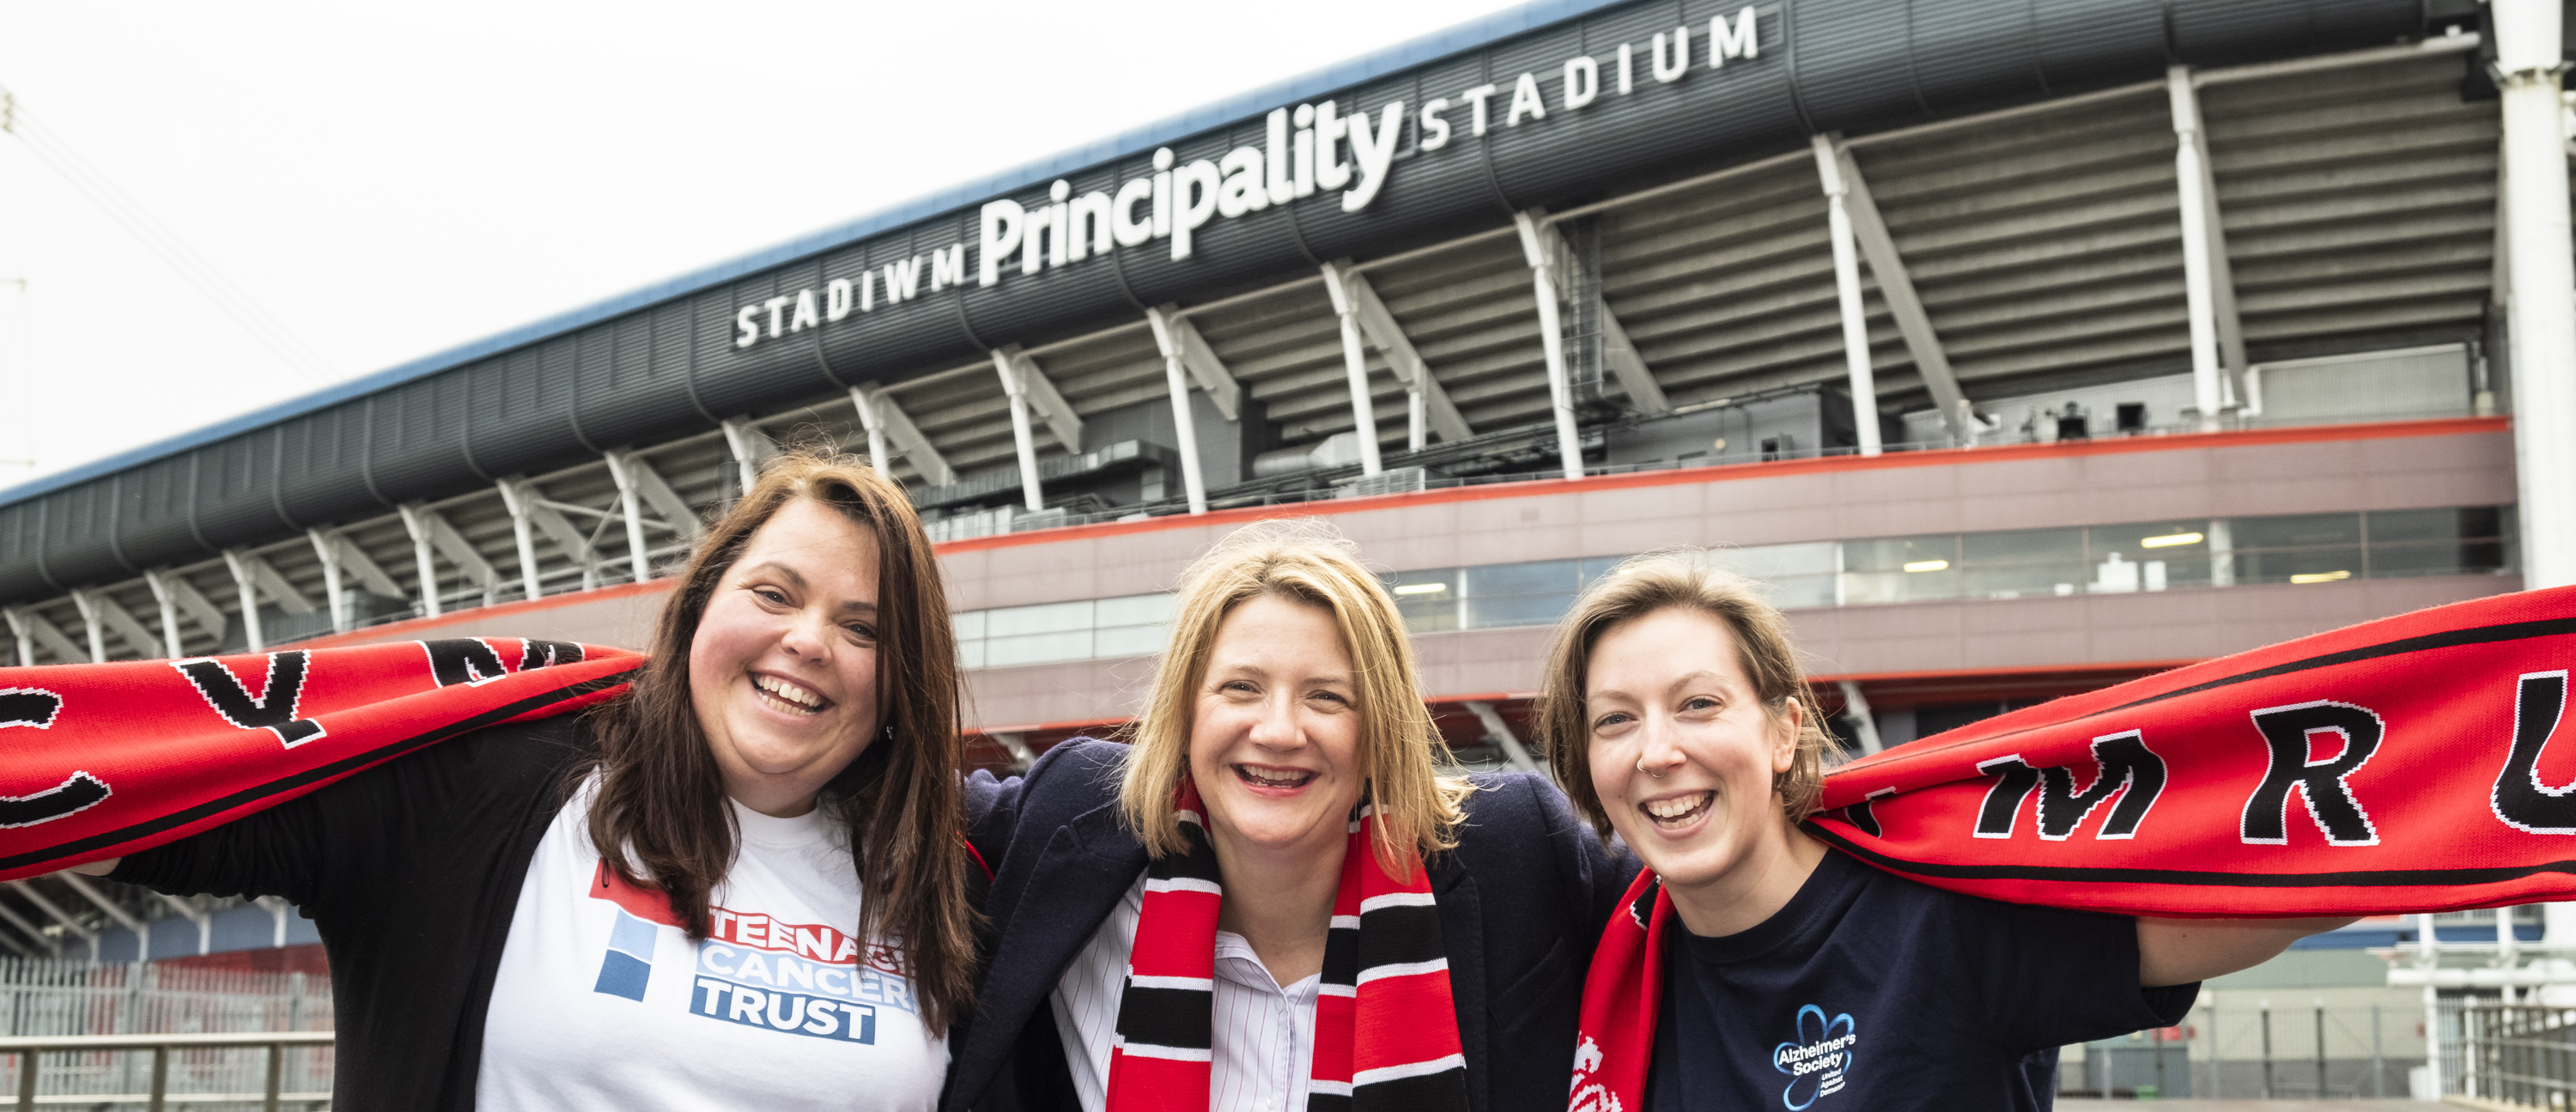 Principality pledges to donate 10k to every match Wales wins in the Six Nations